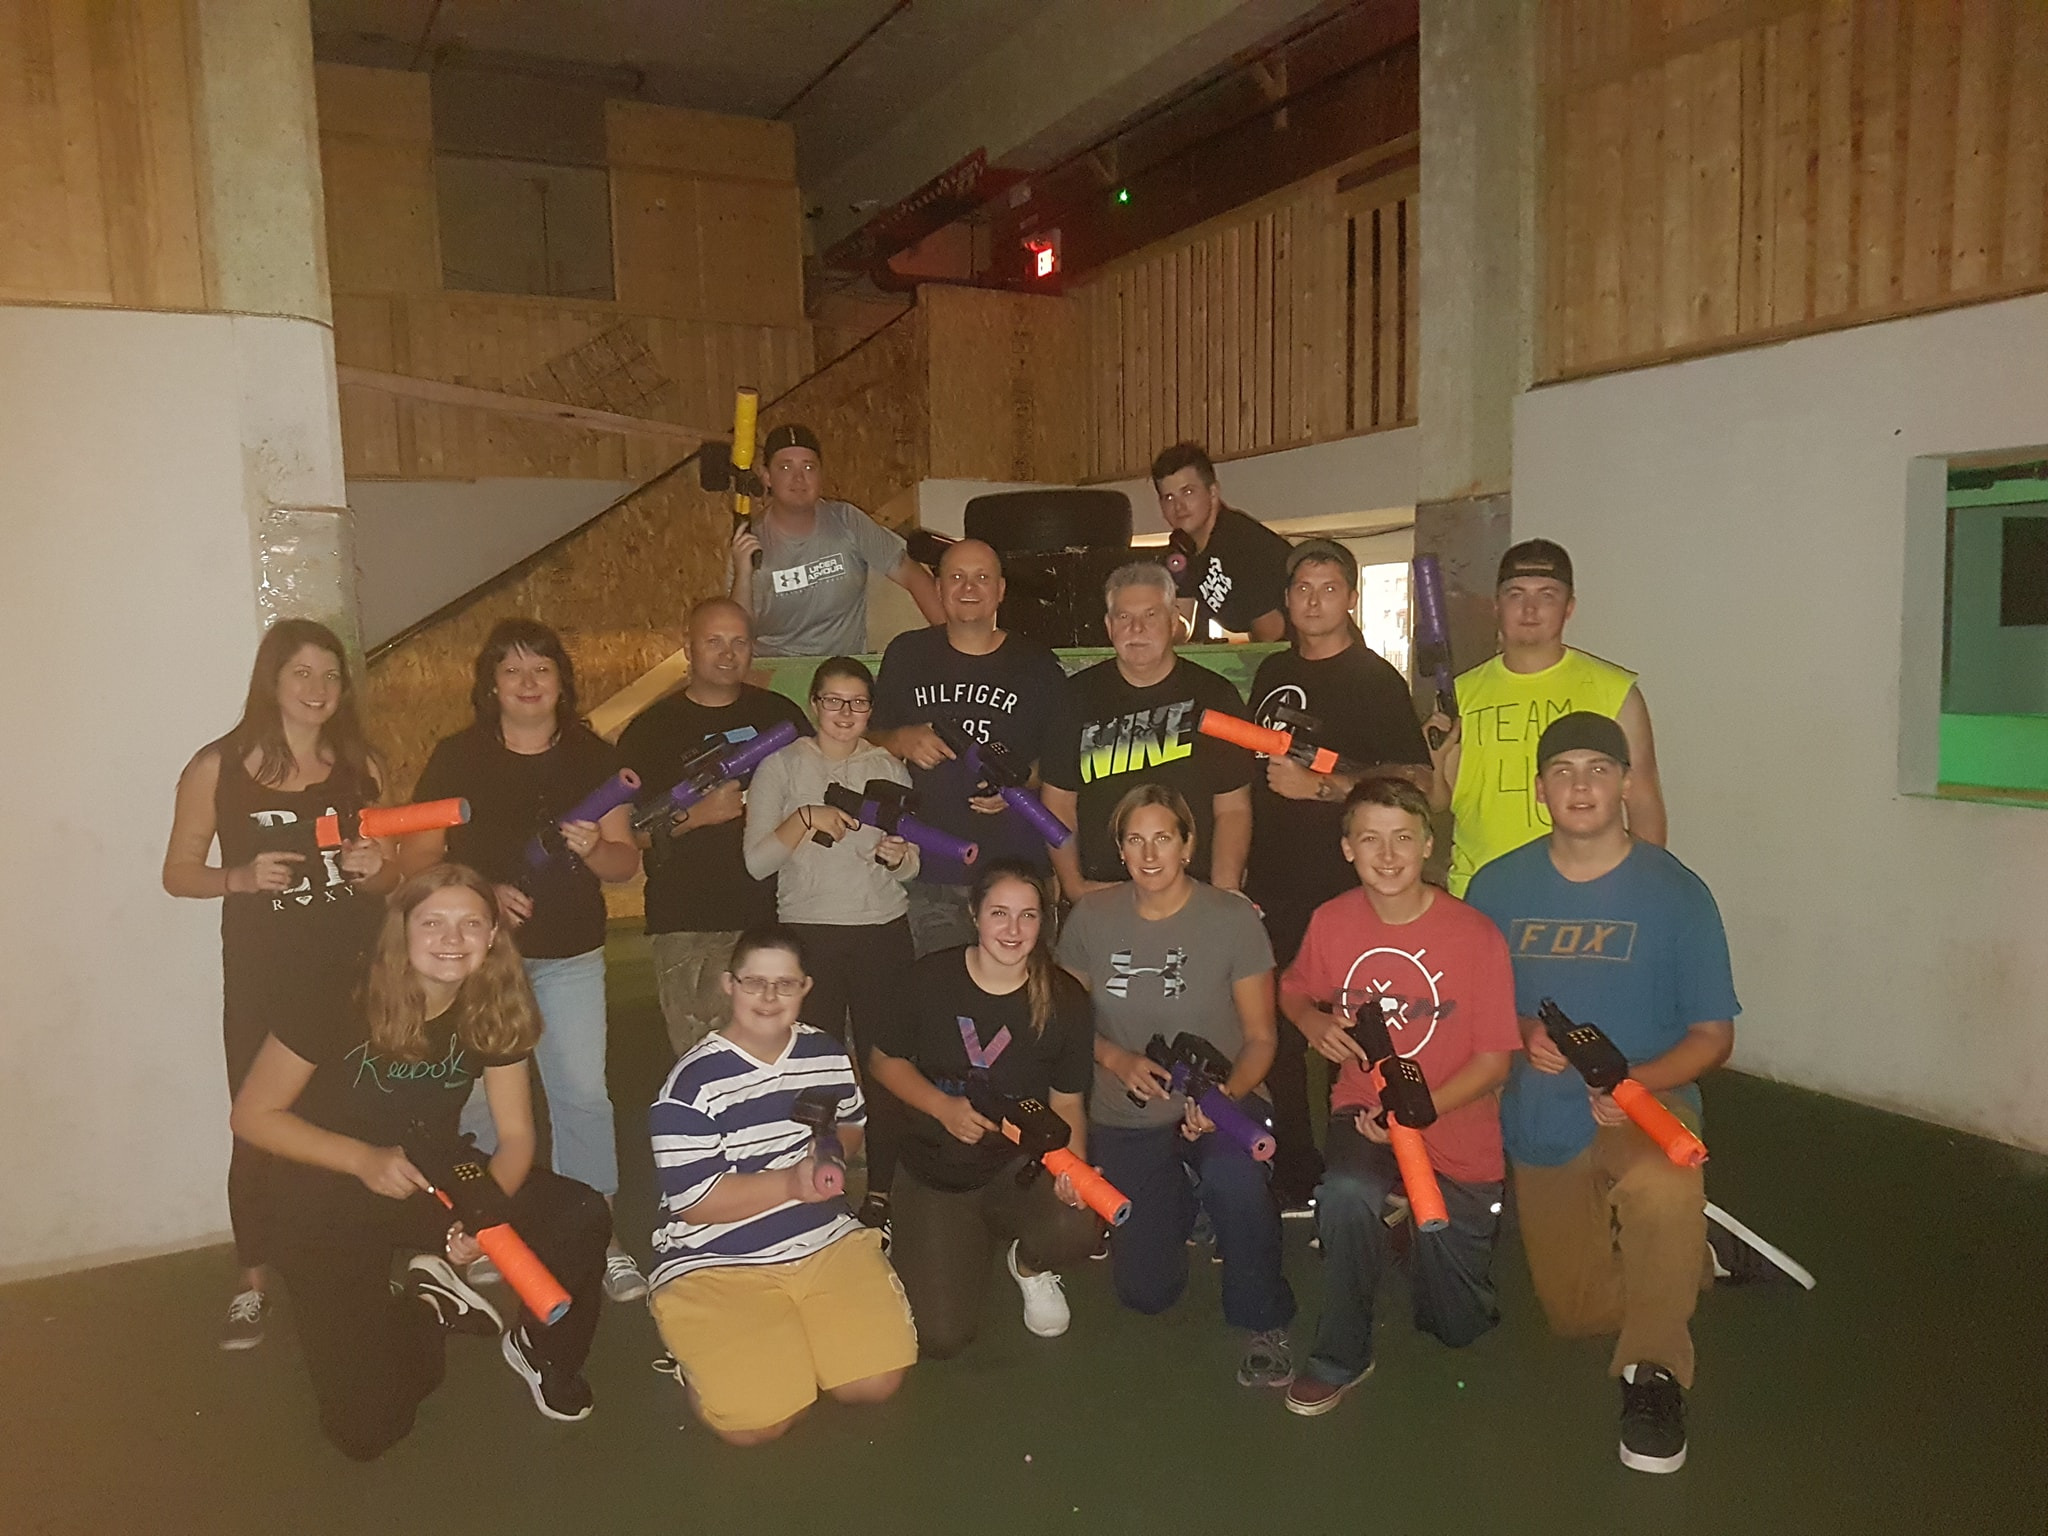 A group of people playing laser tag.